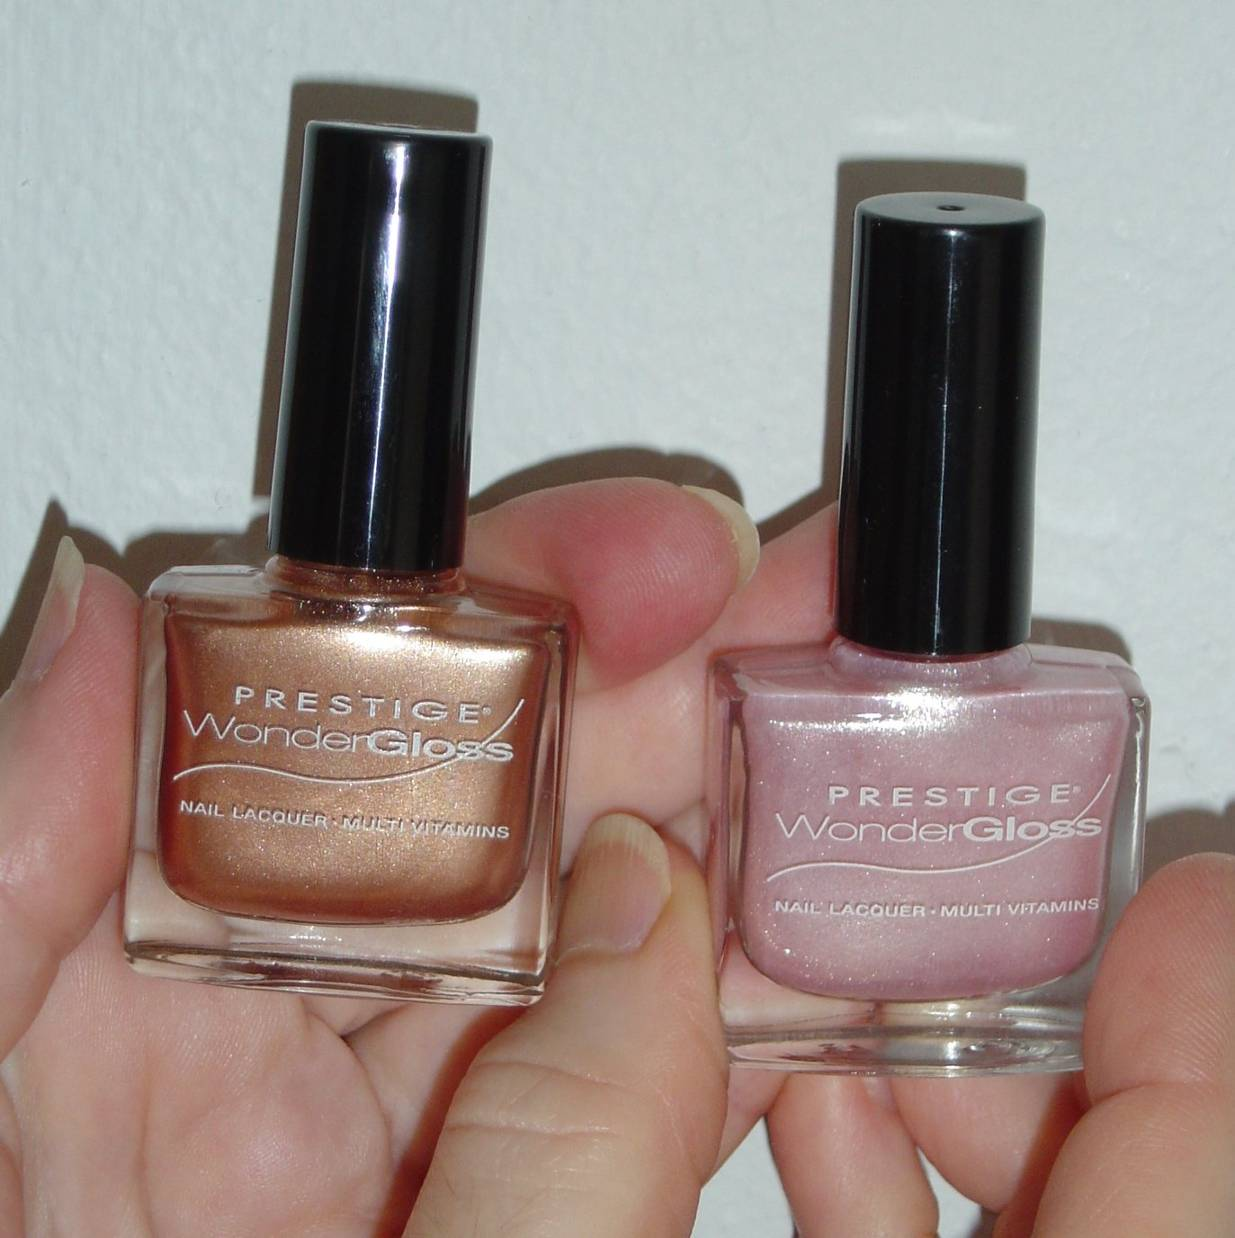 WonderGloss Nail Lacquers From Prestige Cosmetics.jpeg